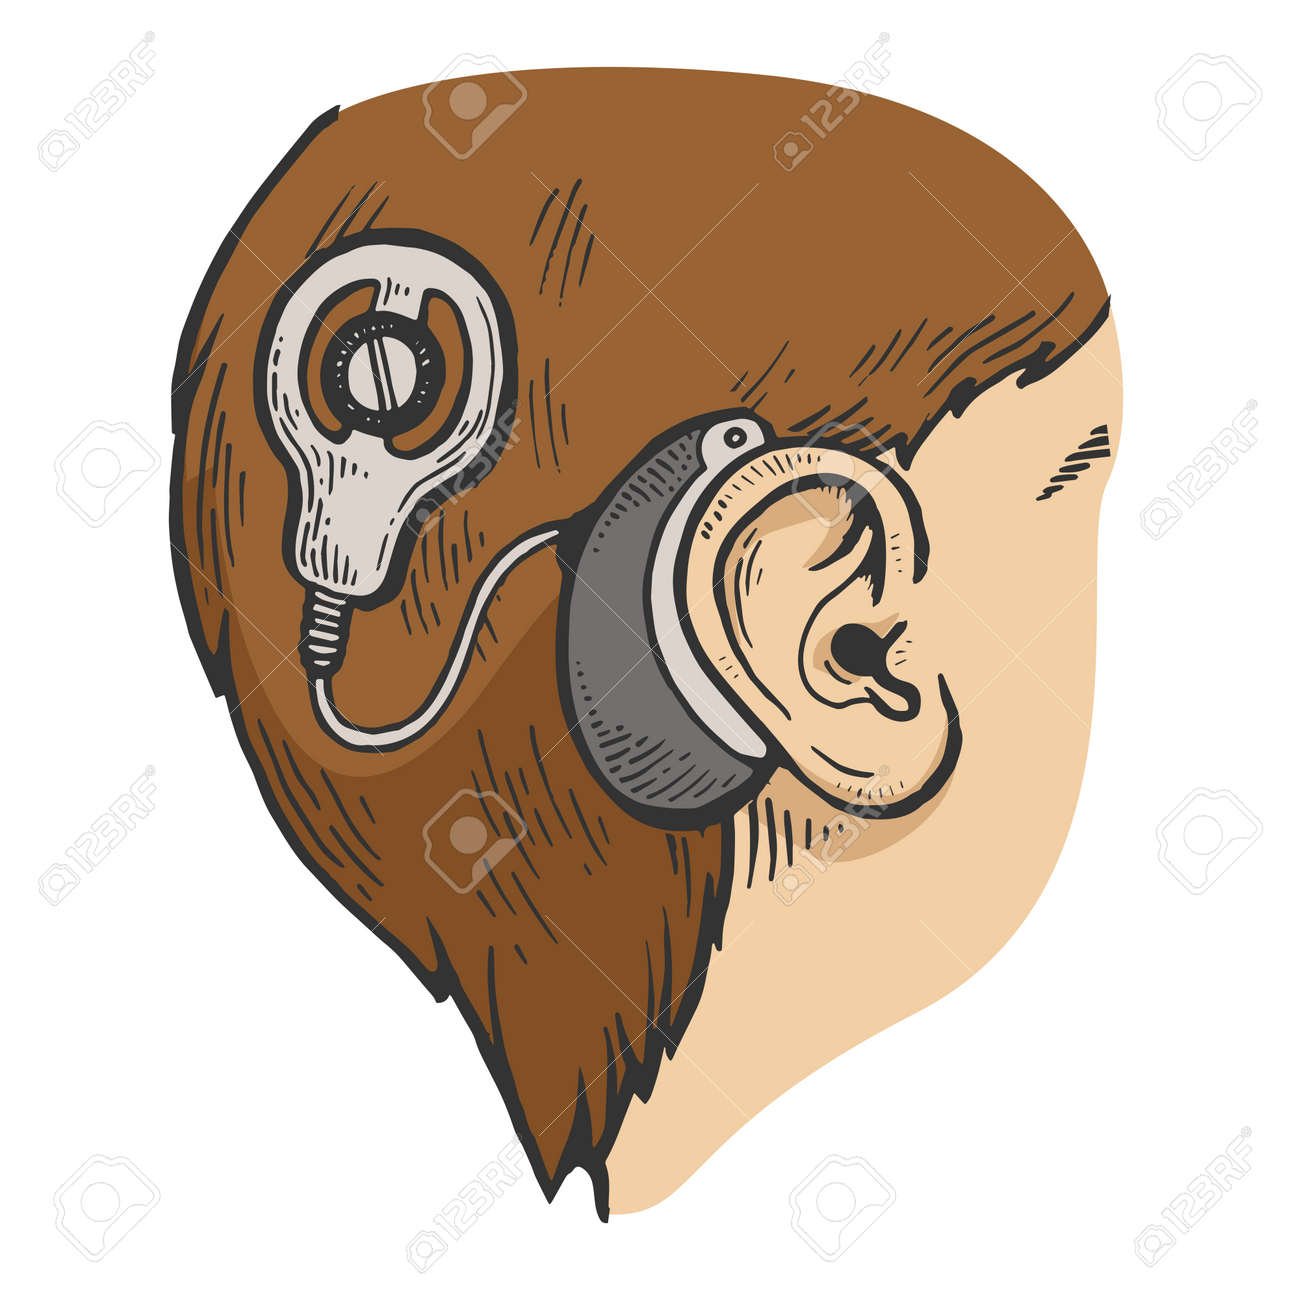 Cochlear implant on child head color sketch engraving vector illustration. Scratch board style imitation. Black and white hand drawn image. - 128502764